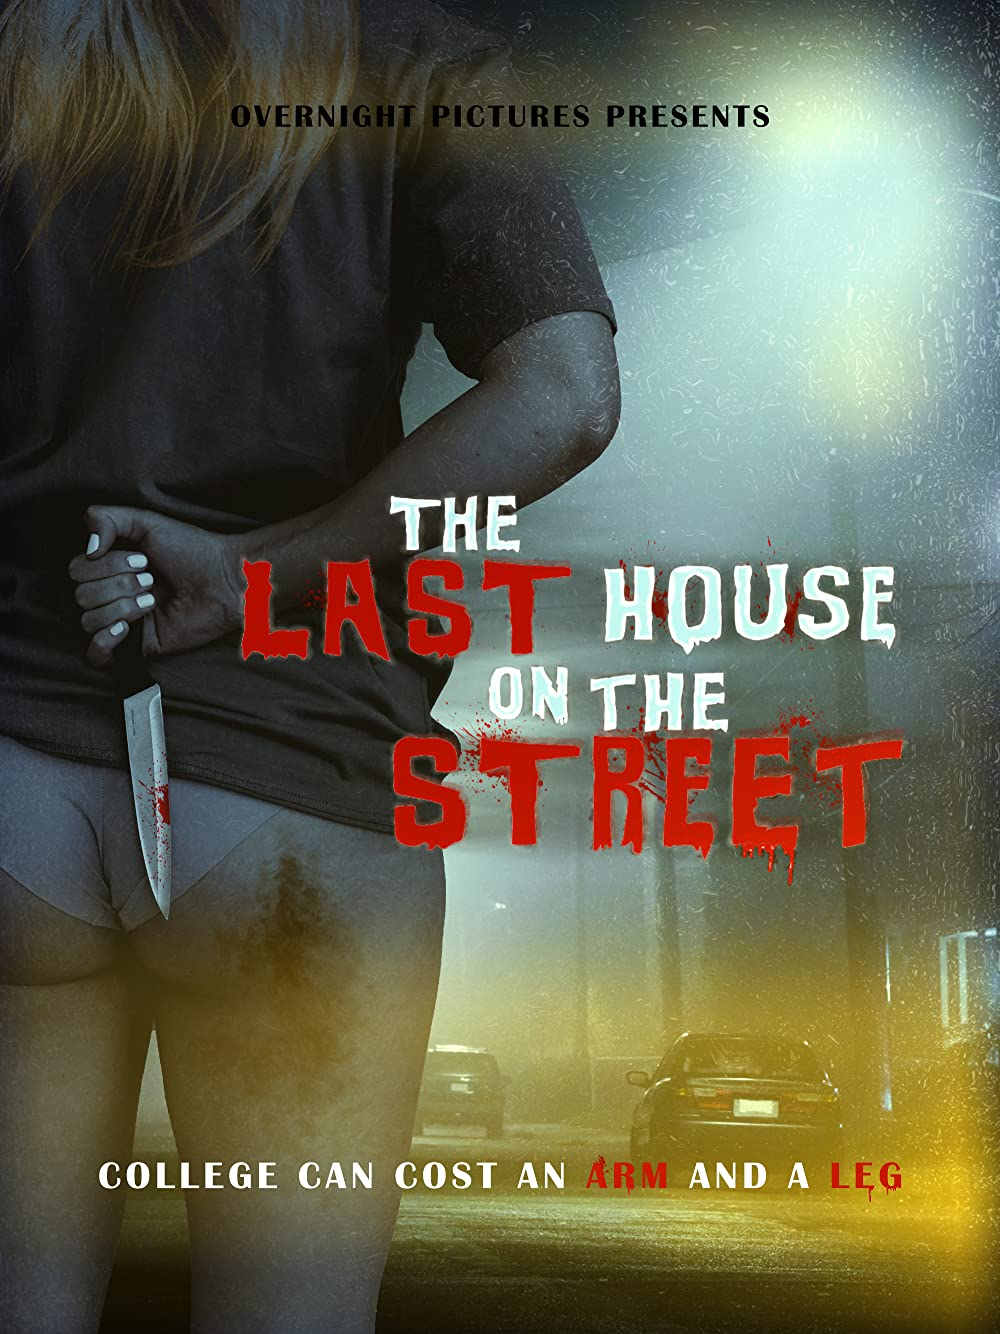 Download The Last House on the Street (2021) Full Movie [In English] With Hindi Subtitles   WebRip 720p [1XBET] FREE on 1XCinema.com & KatMovieHD.sk